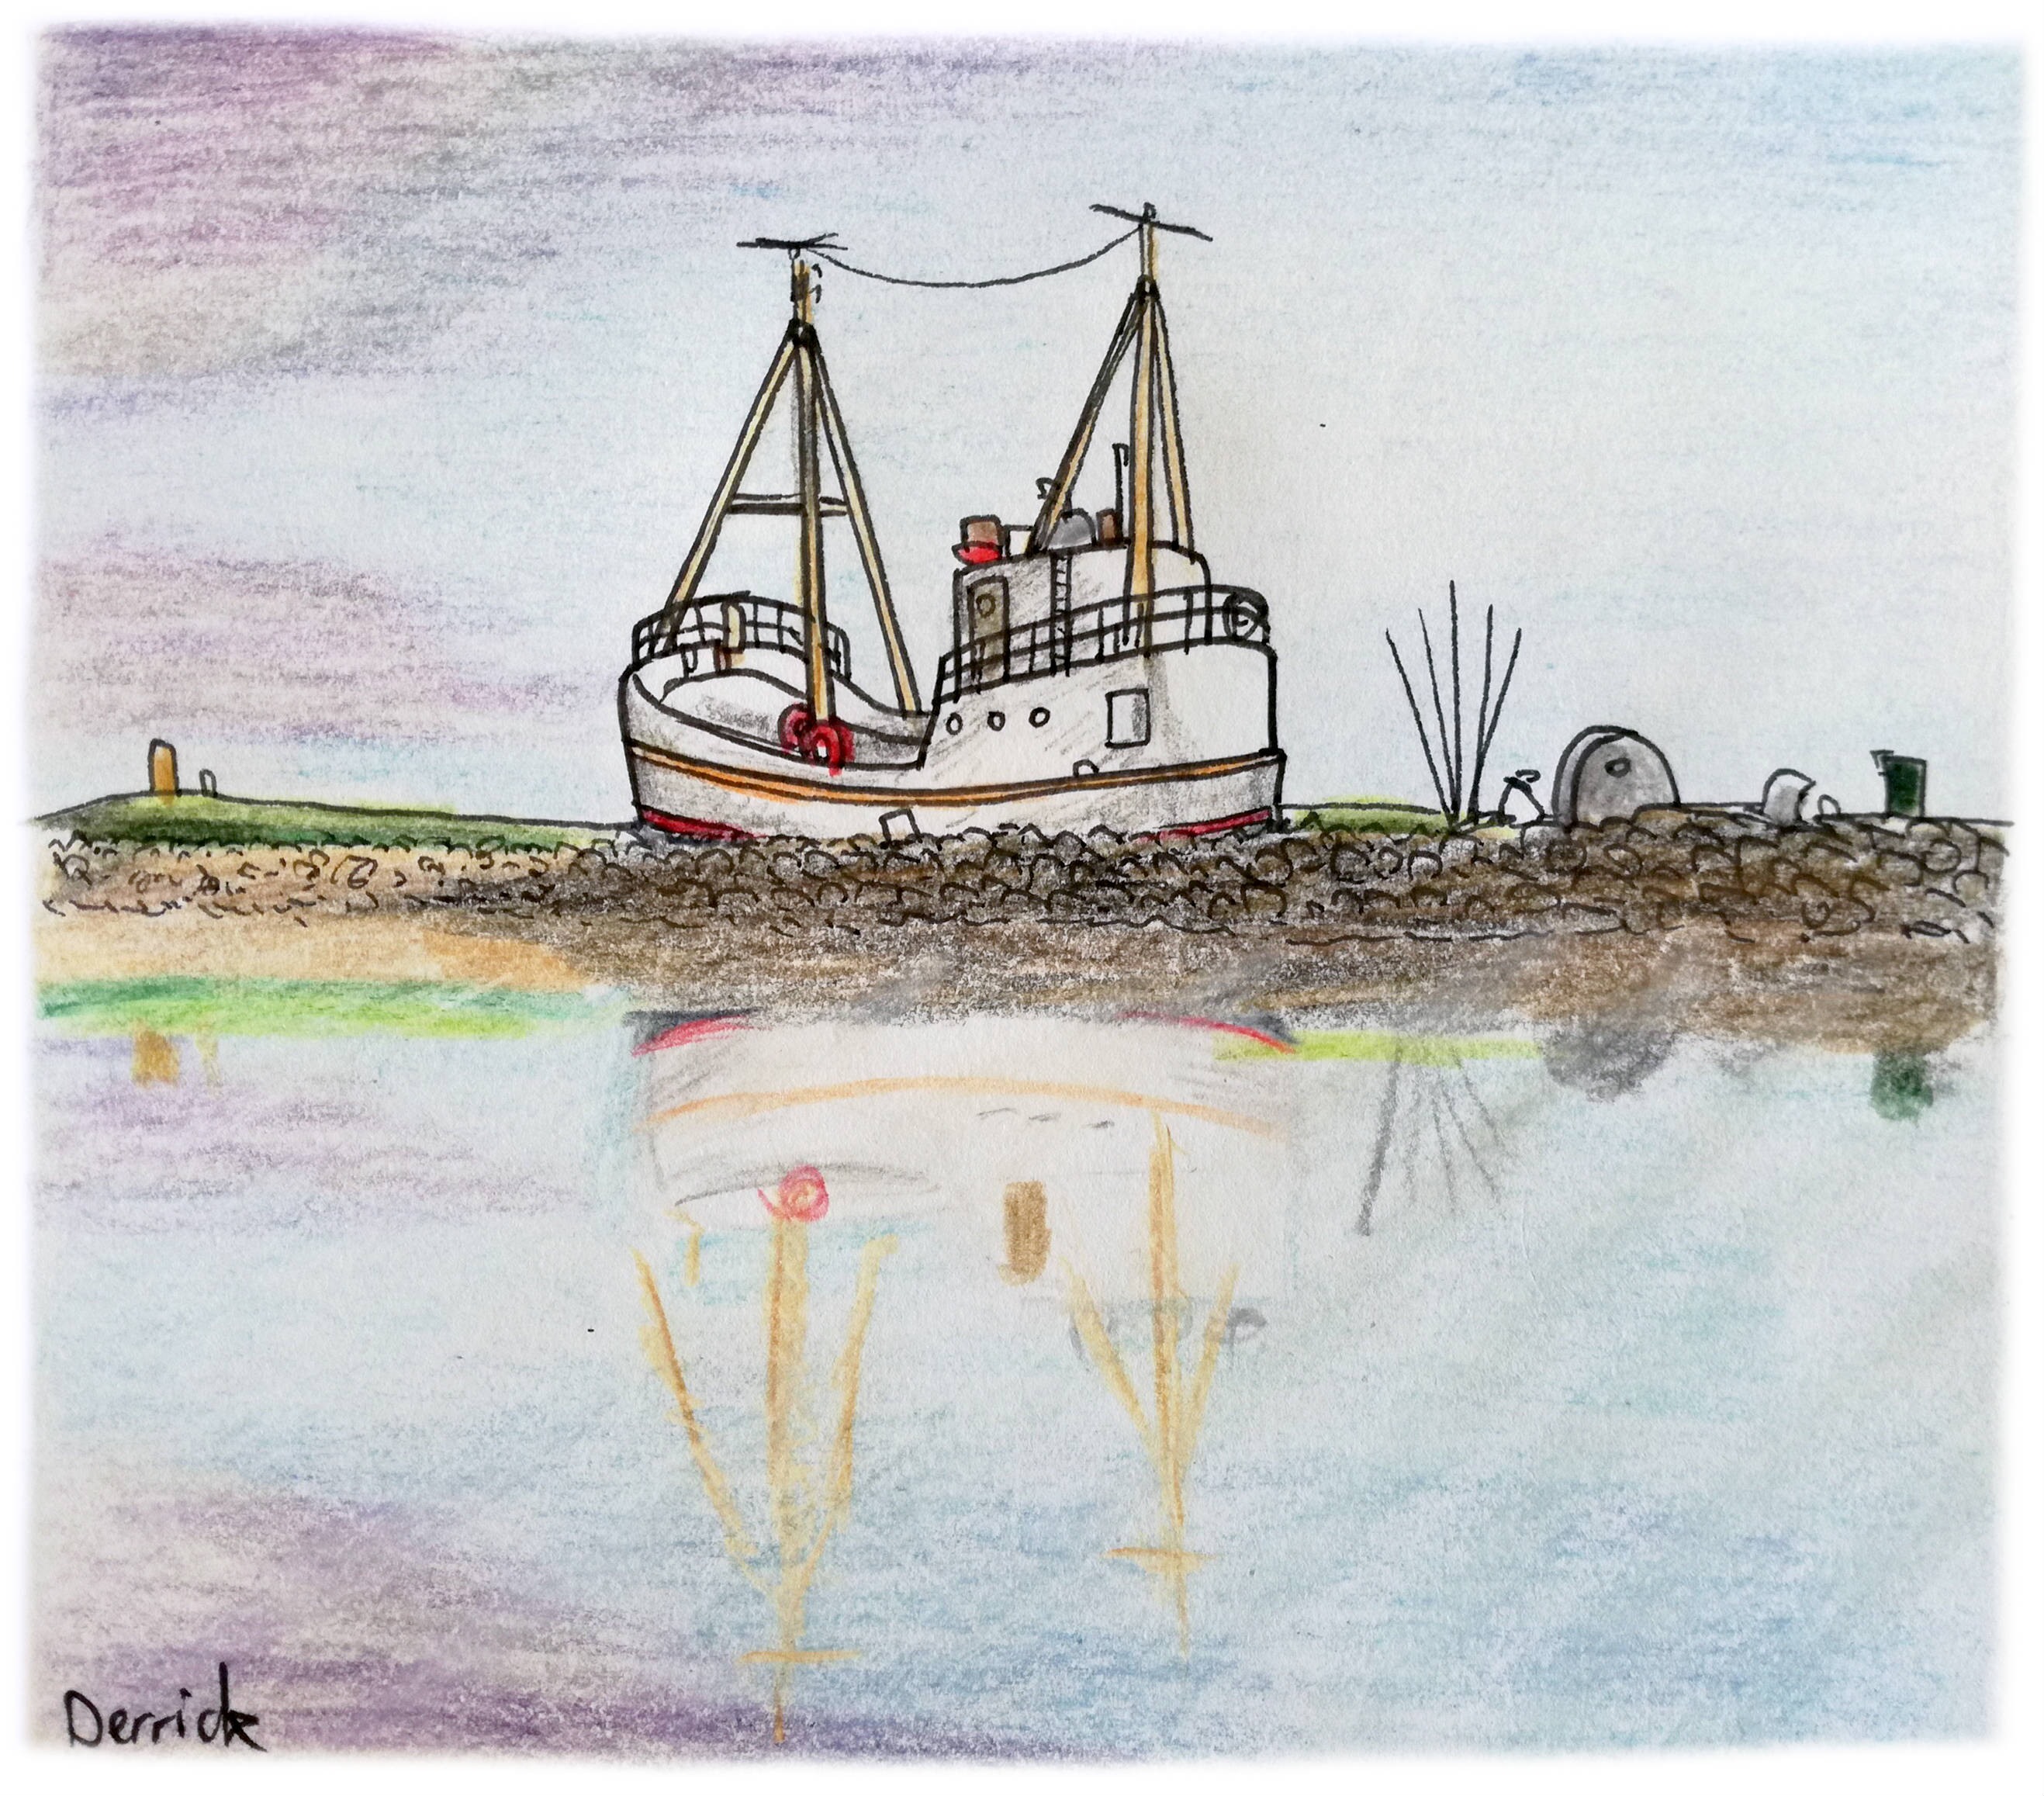 Sketch of a Höfn fishing boat with a purple sunset